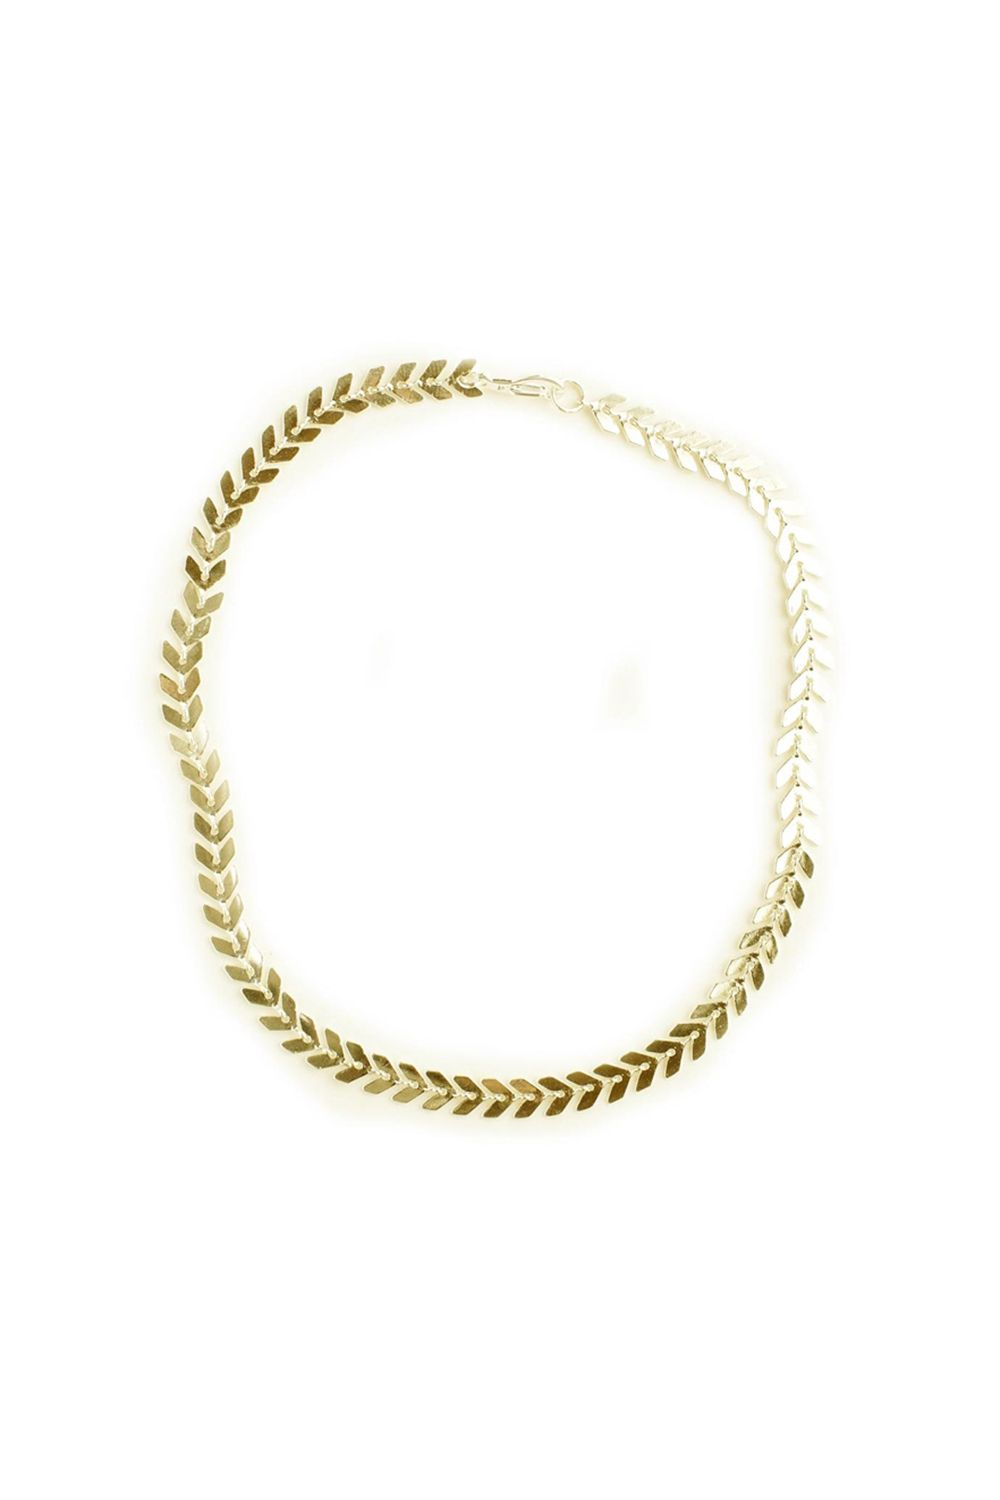 """<p>Like two necklaces and a laurel wreath all in one.</p><p>$36, <a href=""""https://www.cameonouveau.com/Five-and-Two-VENUS-Choker-Necklace-Gold-p/n-fv-n015g.htm"""" target=""""_blank"""">cameonouveau.com</a>.</p>"""